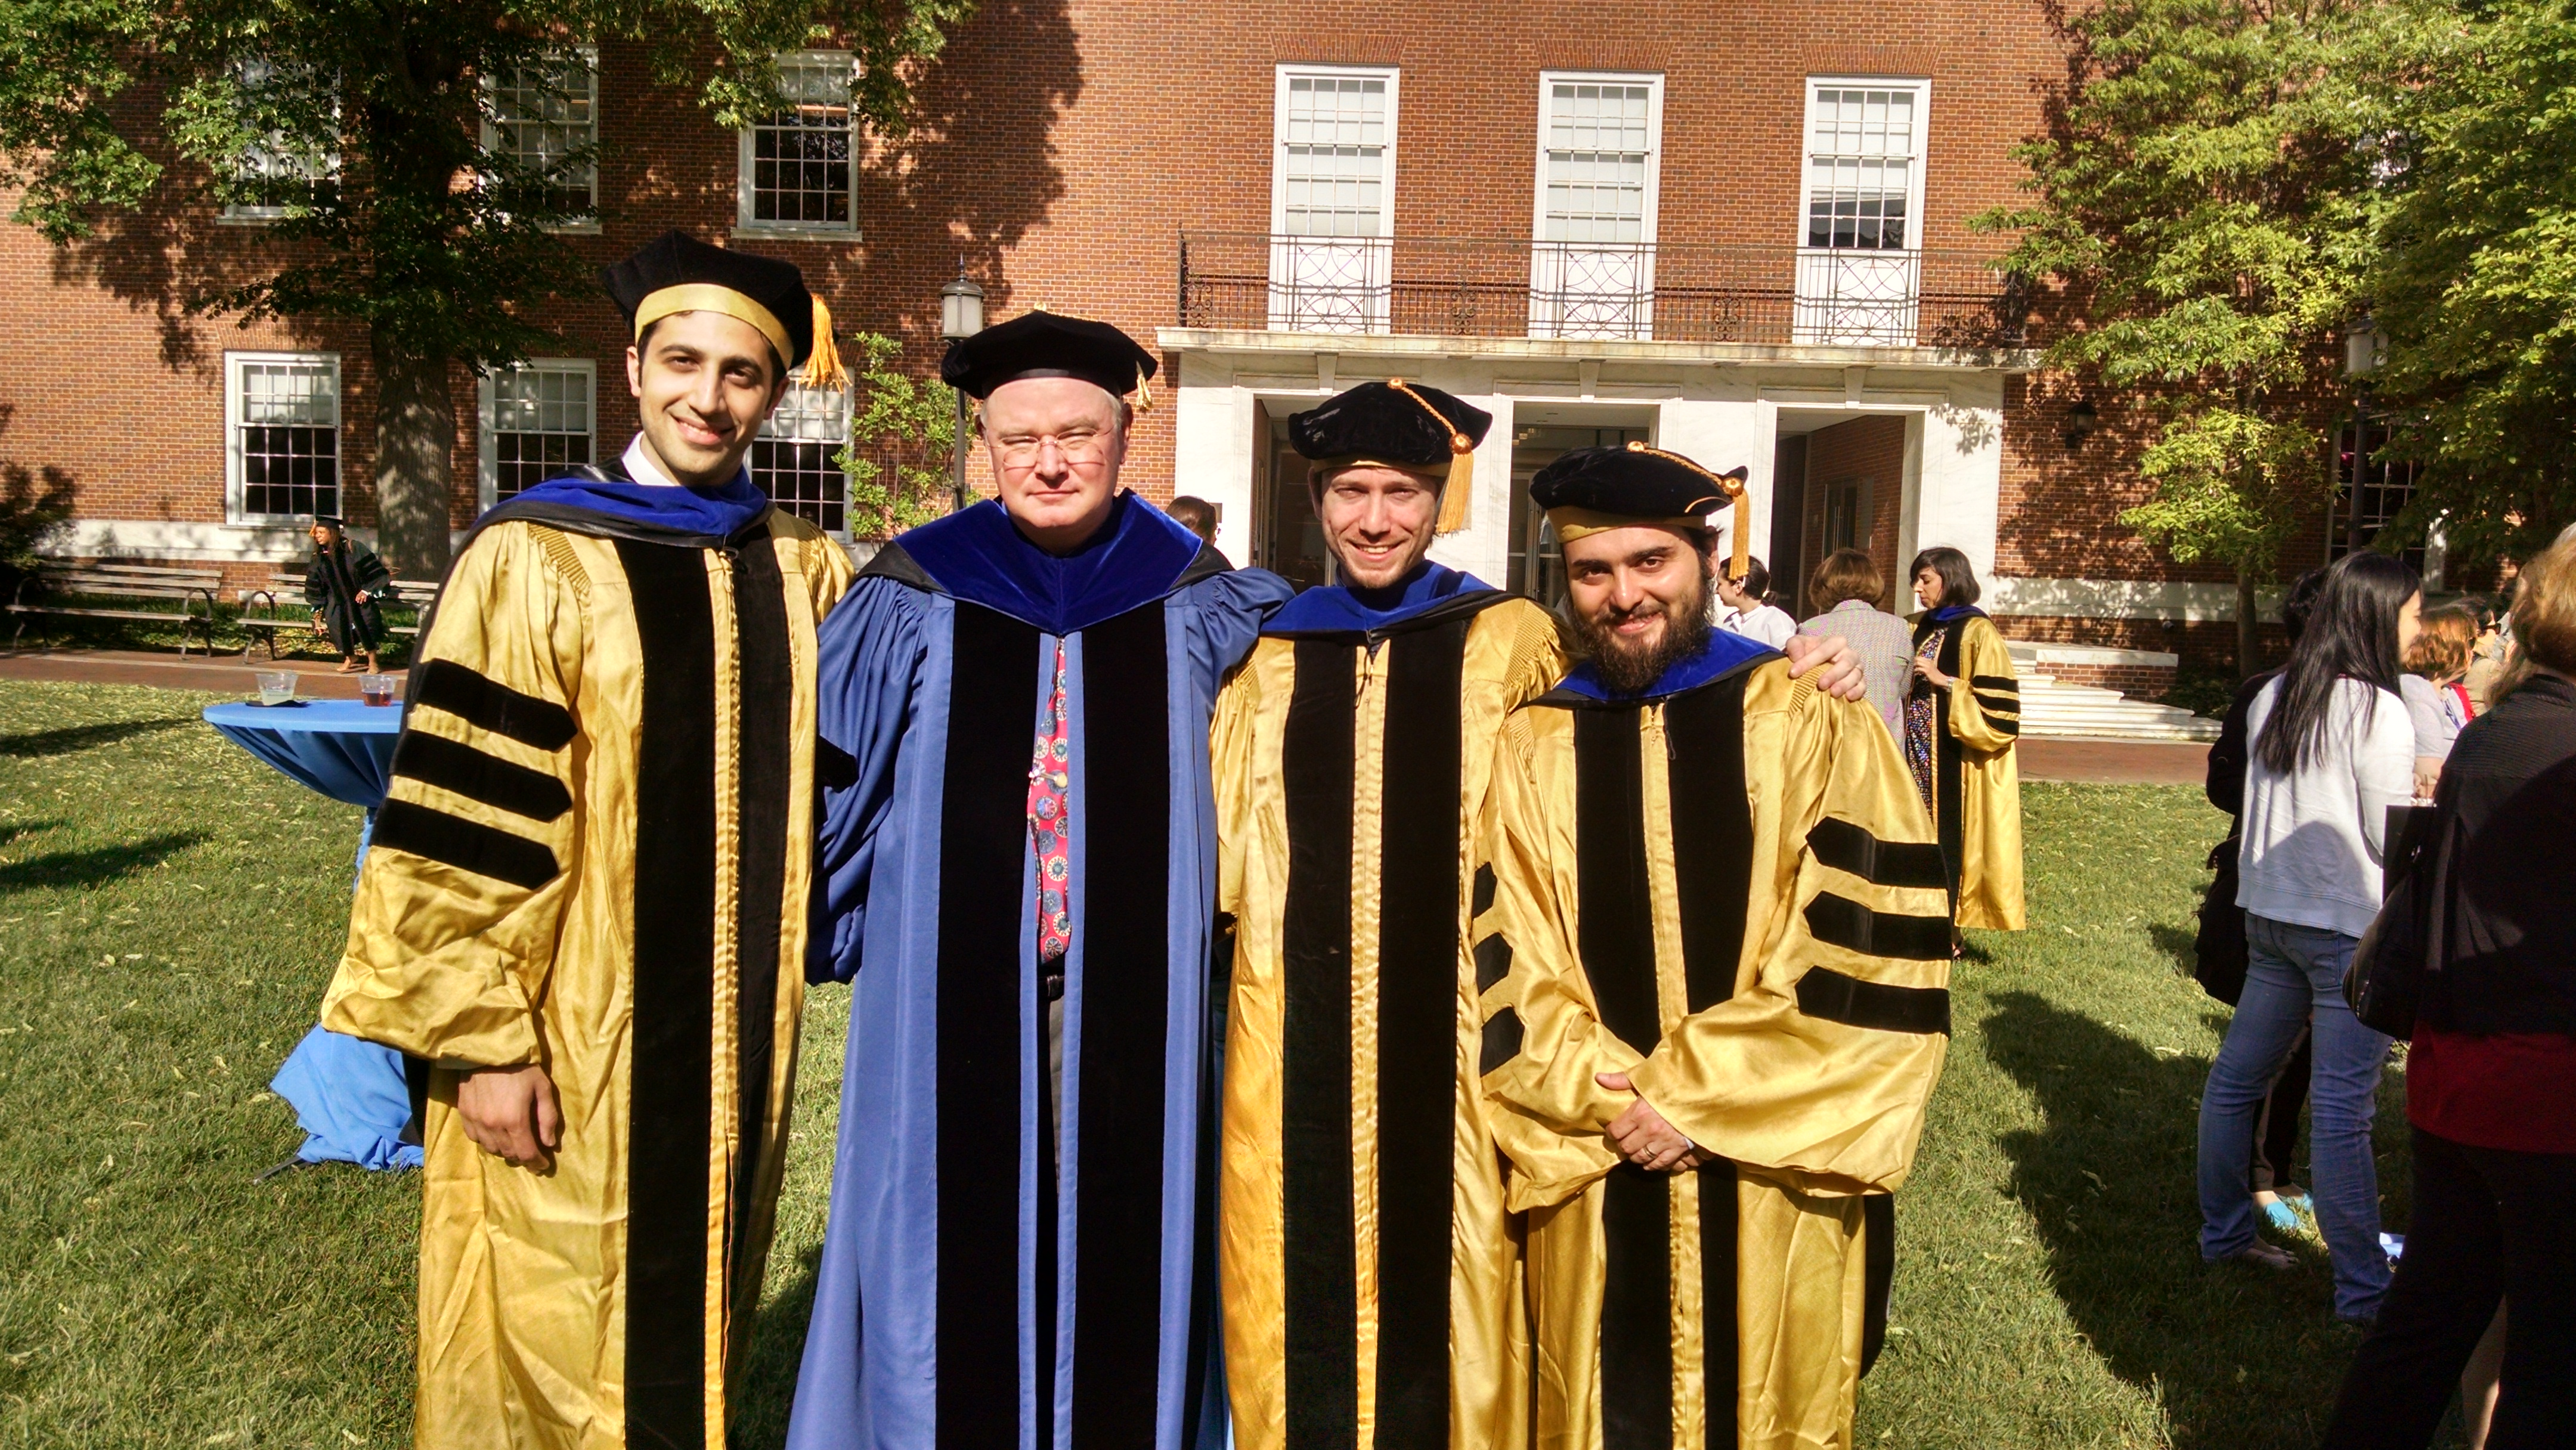 Prof. Whitcomb (Uncle Louie) steps in and hoods our three most ...